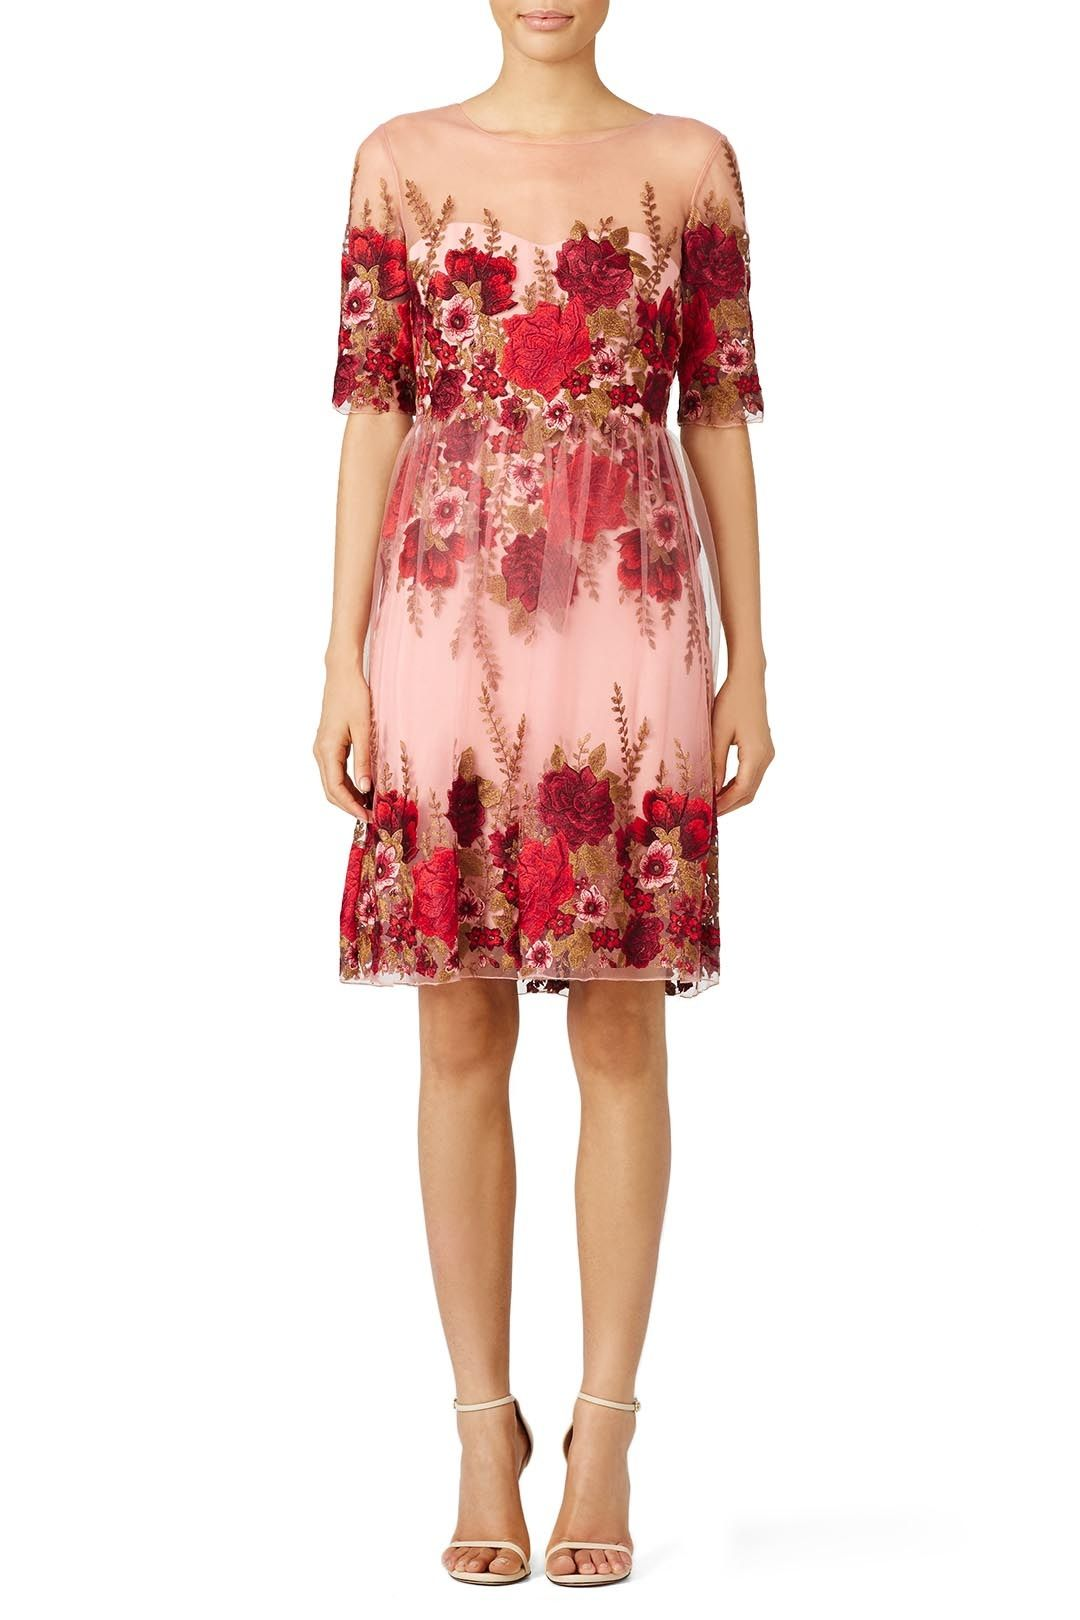 79f74e2cd5c Rent Rose Throw Dress by Marchesa Notte for $135 only at Rent the Runway.